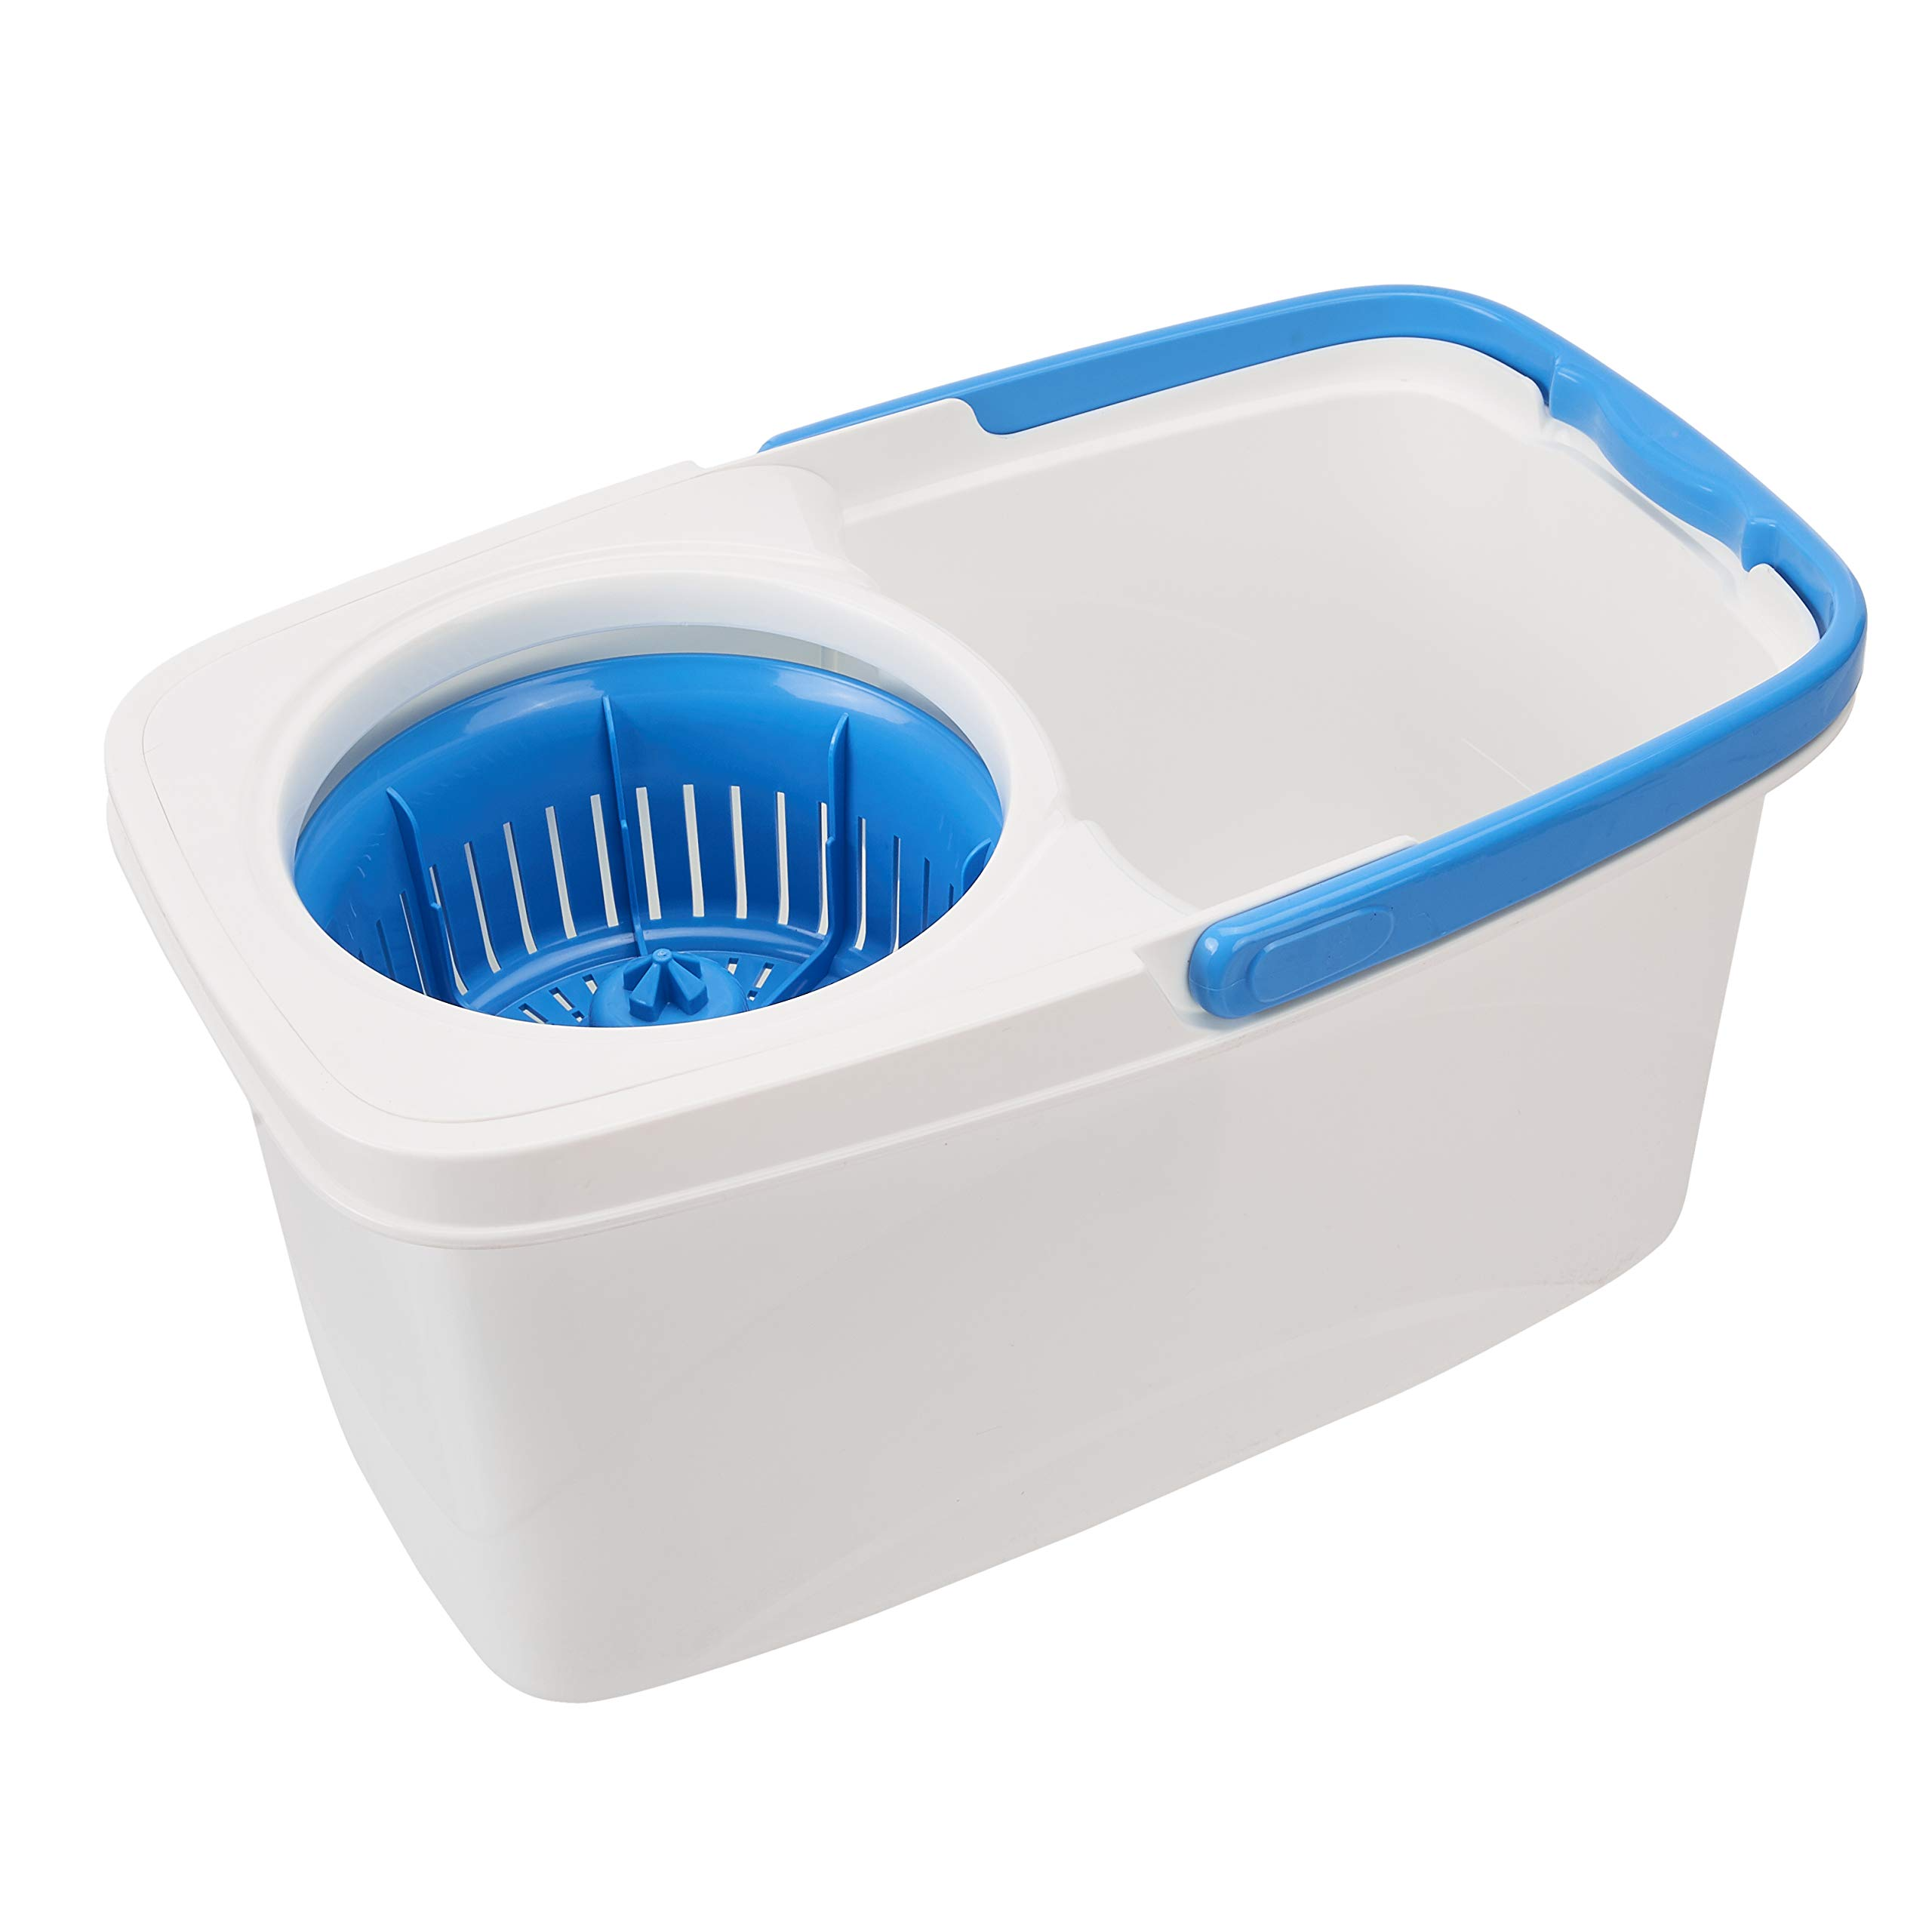 AmazonBasics Spin Mop with Built-In Ringer and Large Water Bucket by AmazonBasics (Image #3)